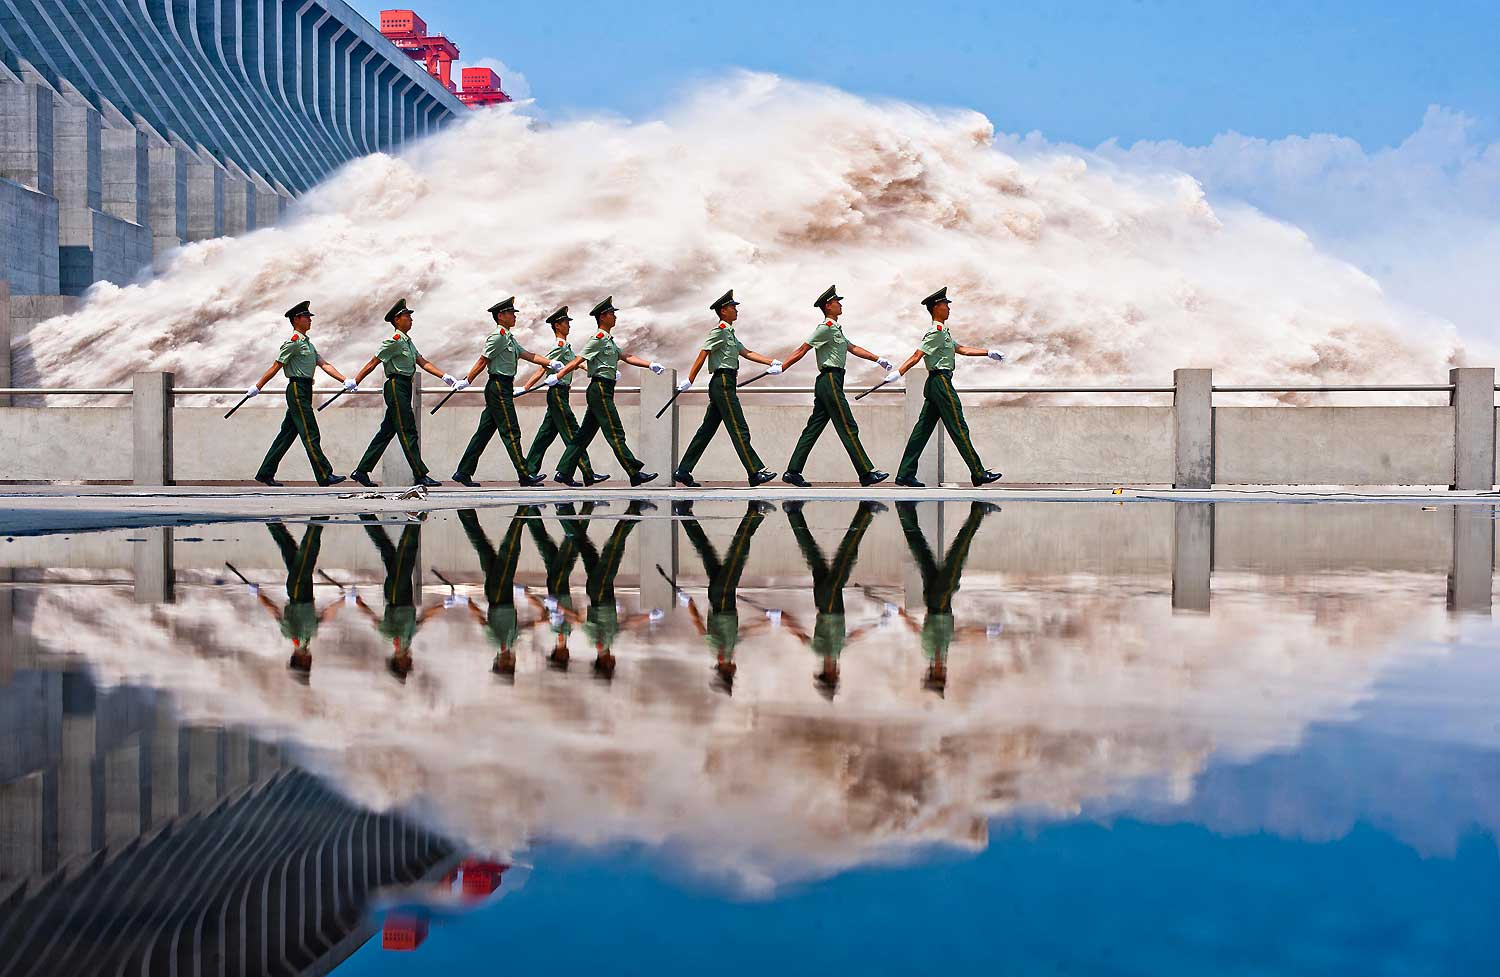 Image: Three Gorges Dam Reaches Flood Peak